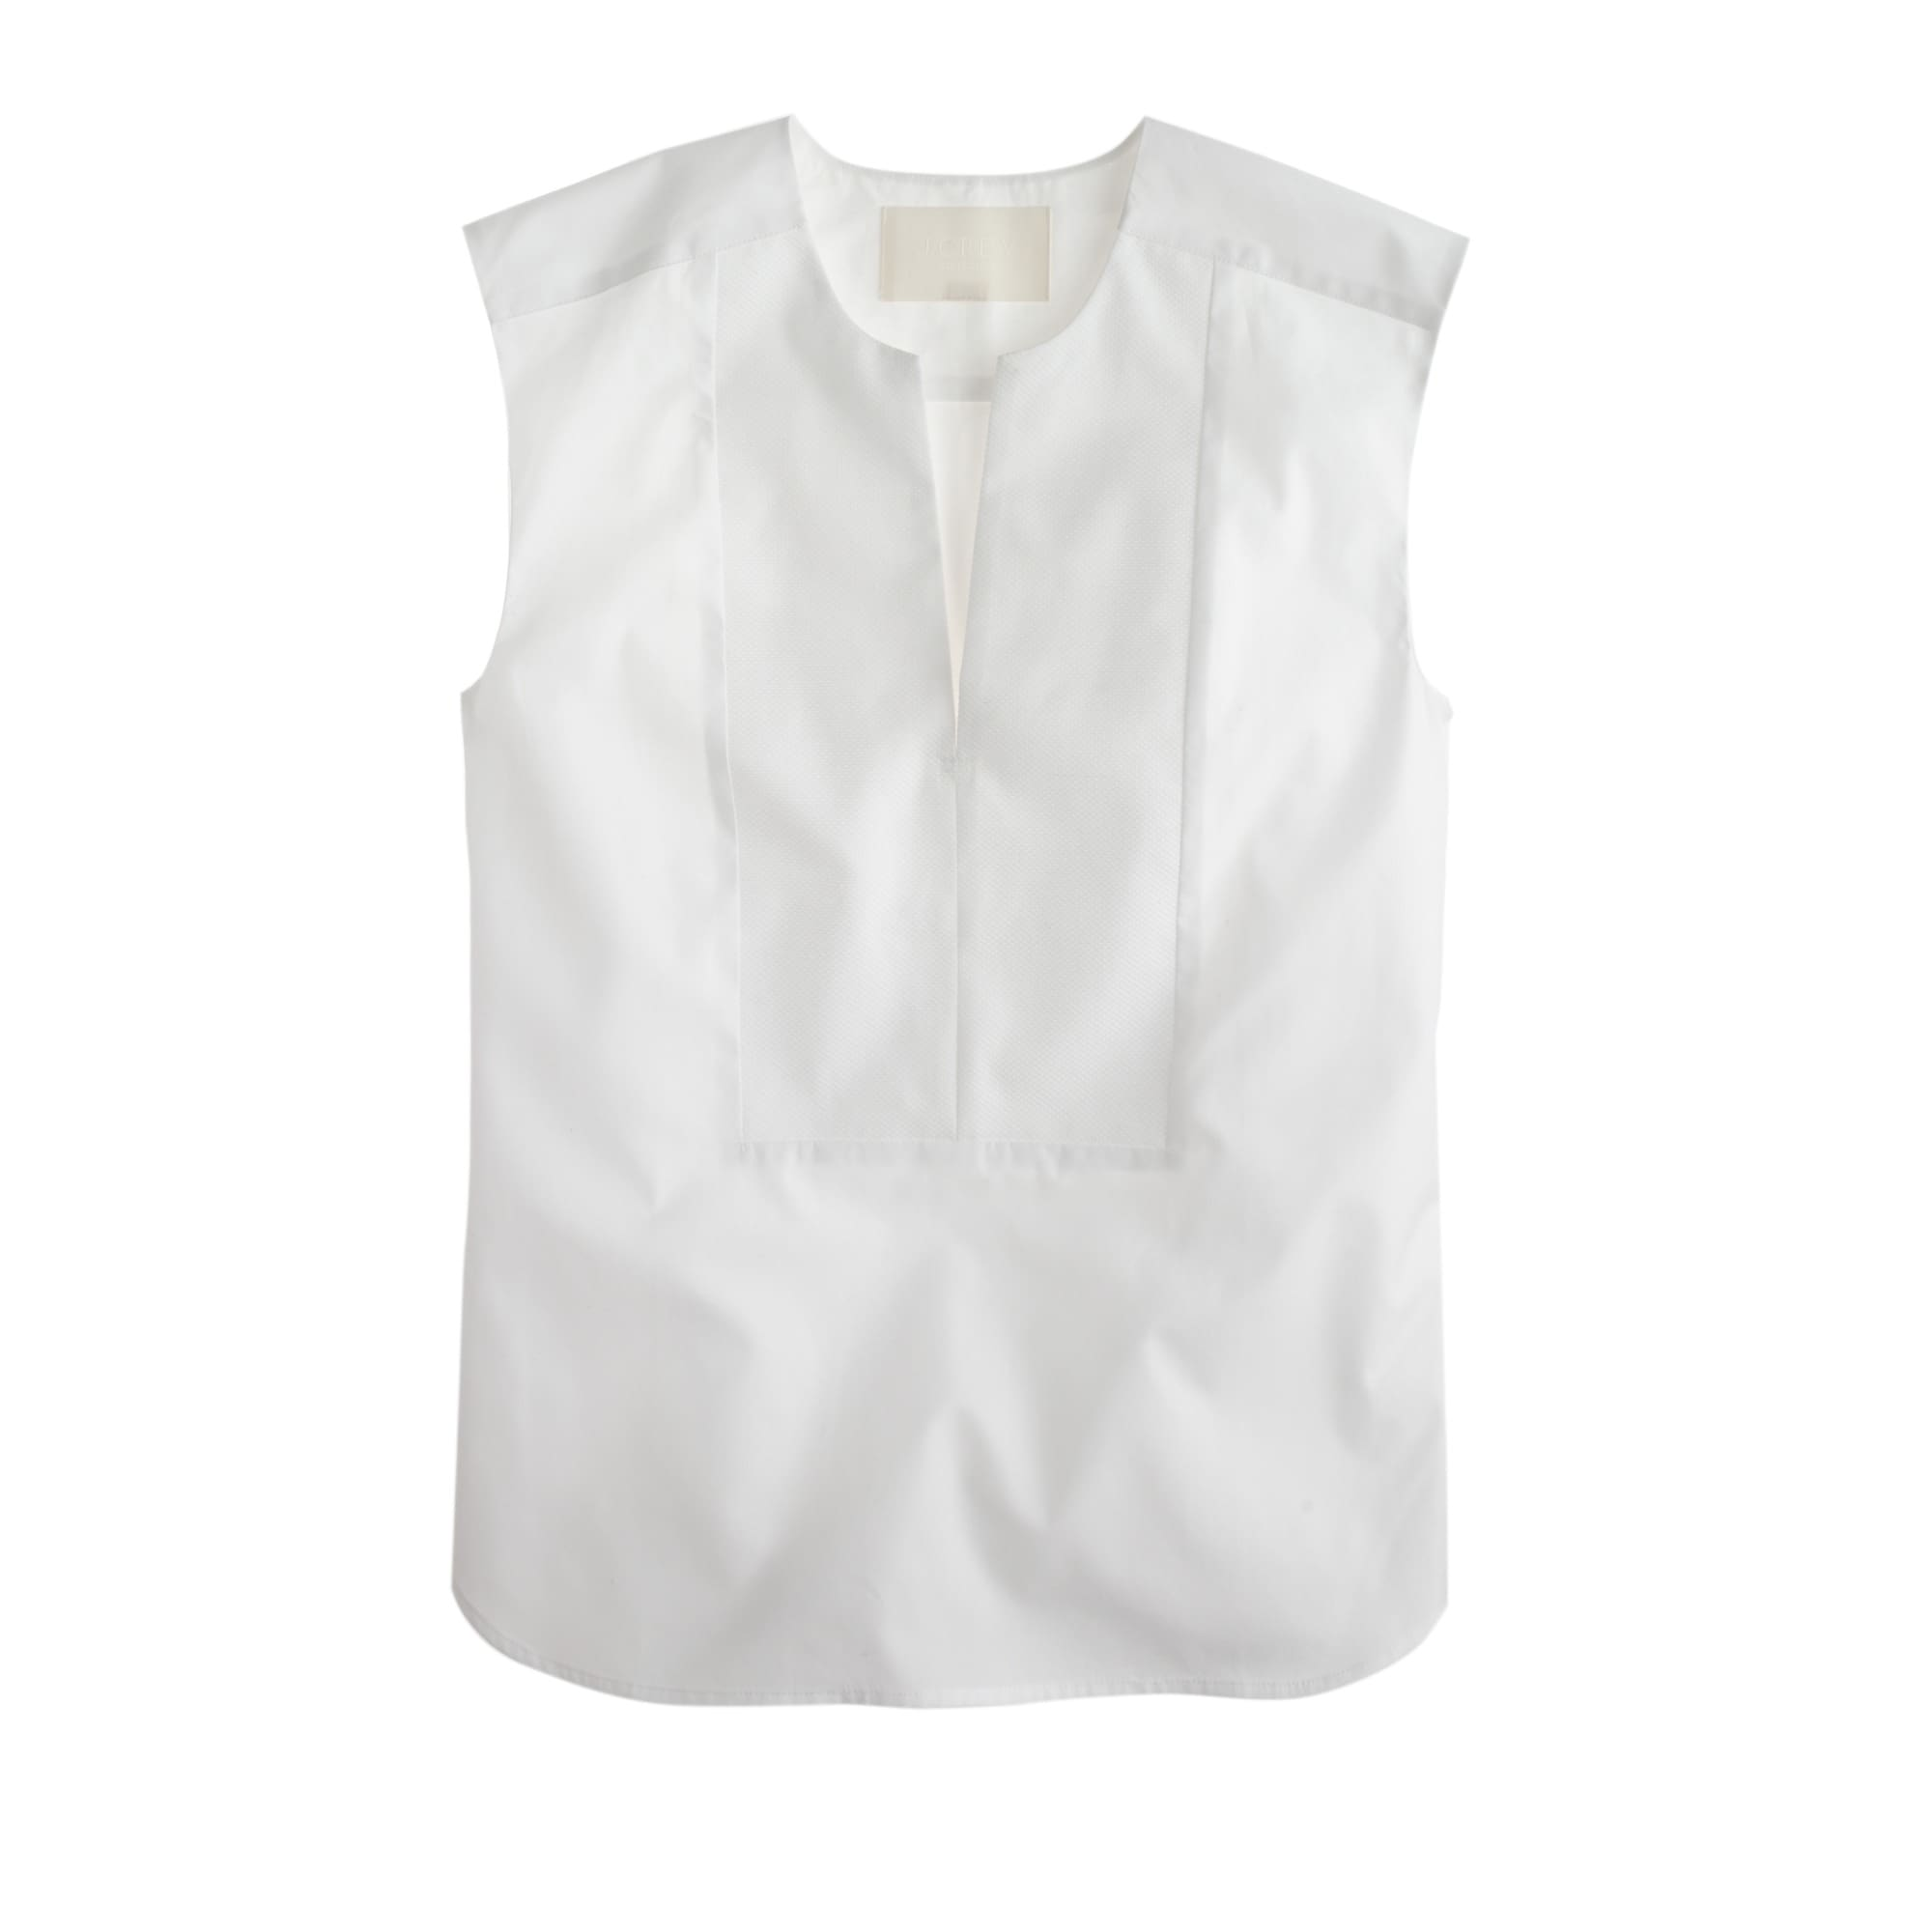 Image 1 for Collection Thomas Mason® for J.Crew sleeveless top